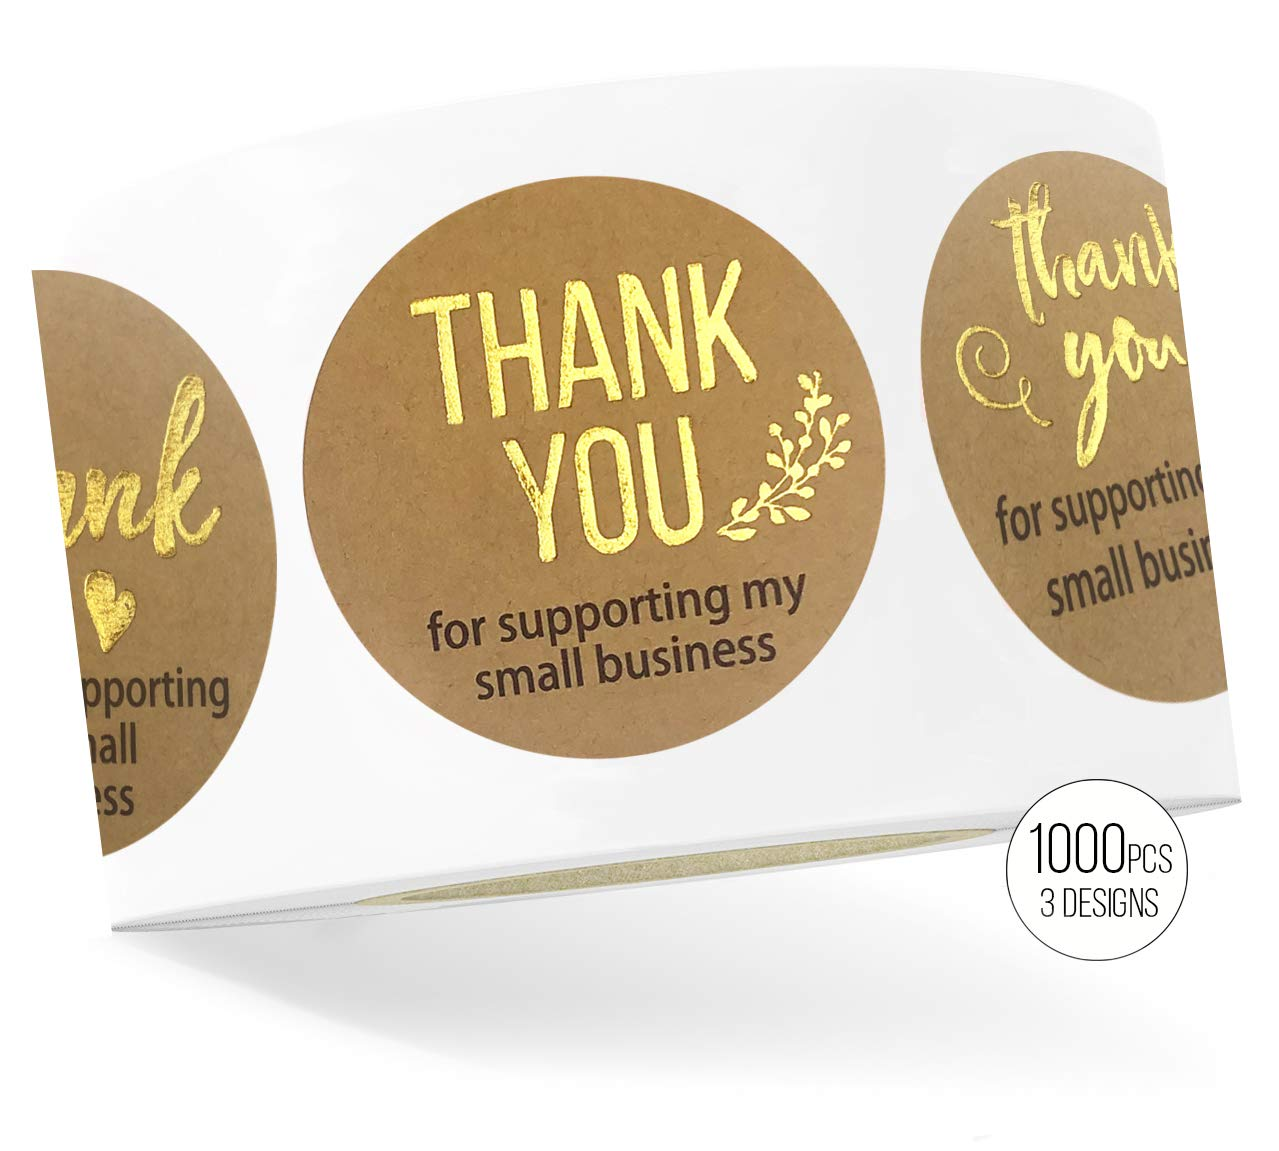 LaPaper - Kraft Thank You Stickers with Gold Foil | Round 1,5 inches | Bulk 1000 Labels Per Roll | 3 Designs for All Occasions: Wedding, Baby Shower, Business, Graduation, Gifts, Party Favors, Cards by LaPapier